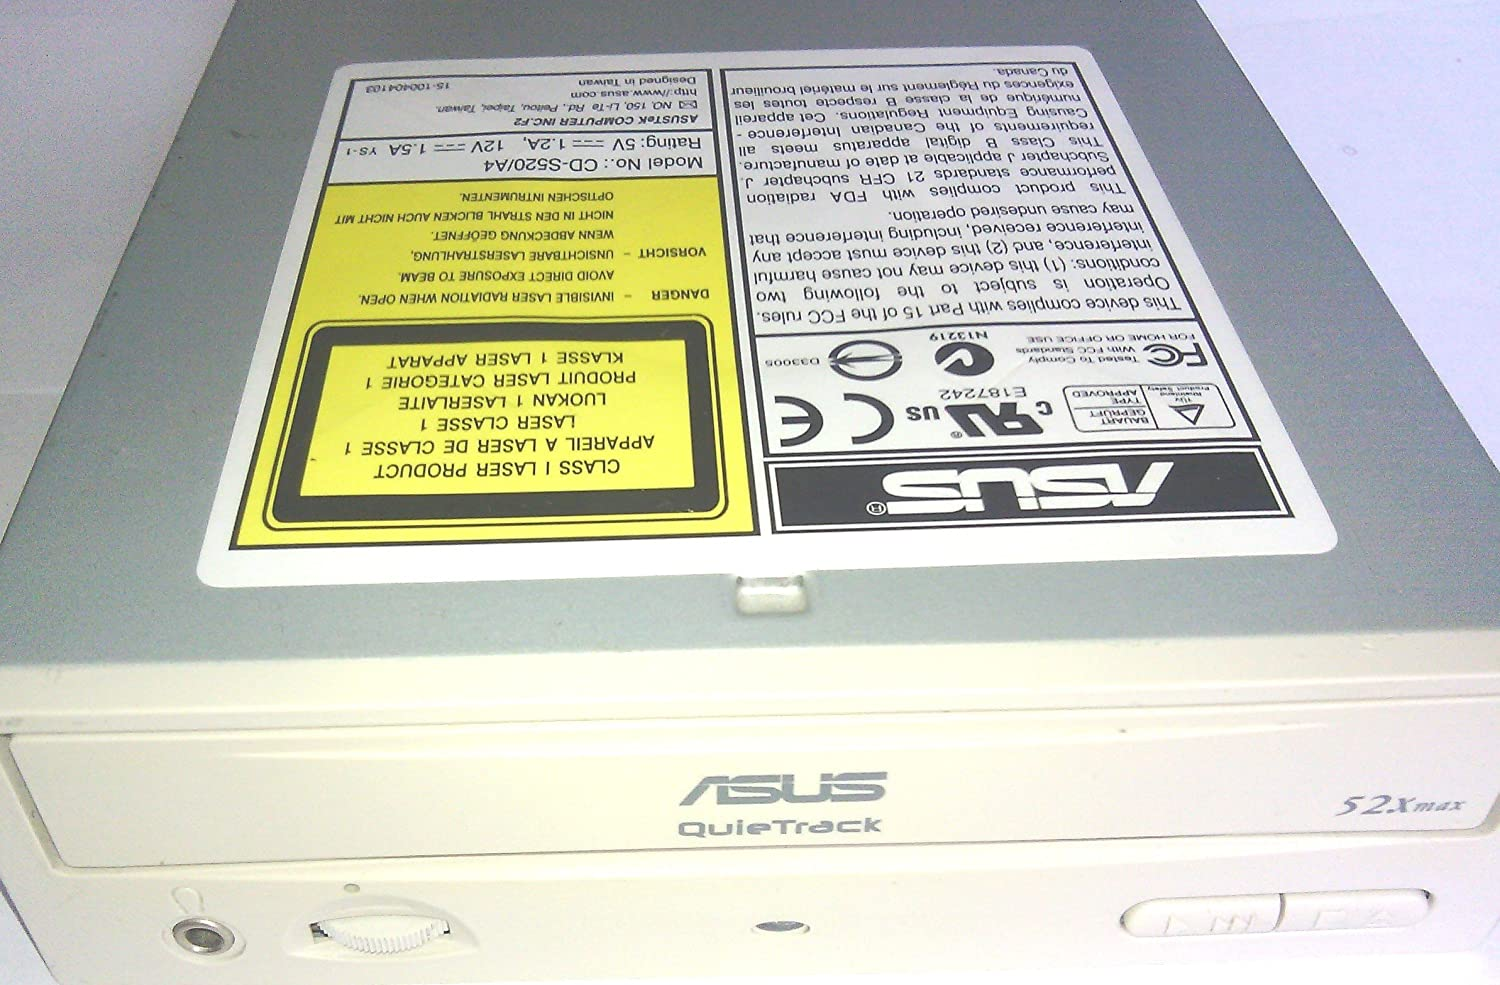 ASUS QUIETRACK CD ROM WINDOWS 7 DRIVERS DOWNLOAD (2019)